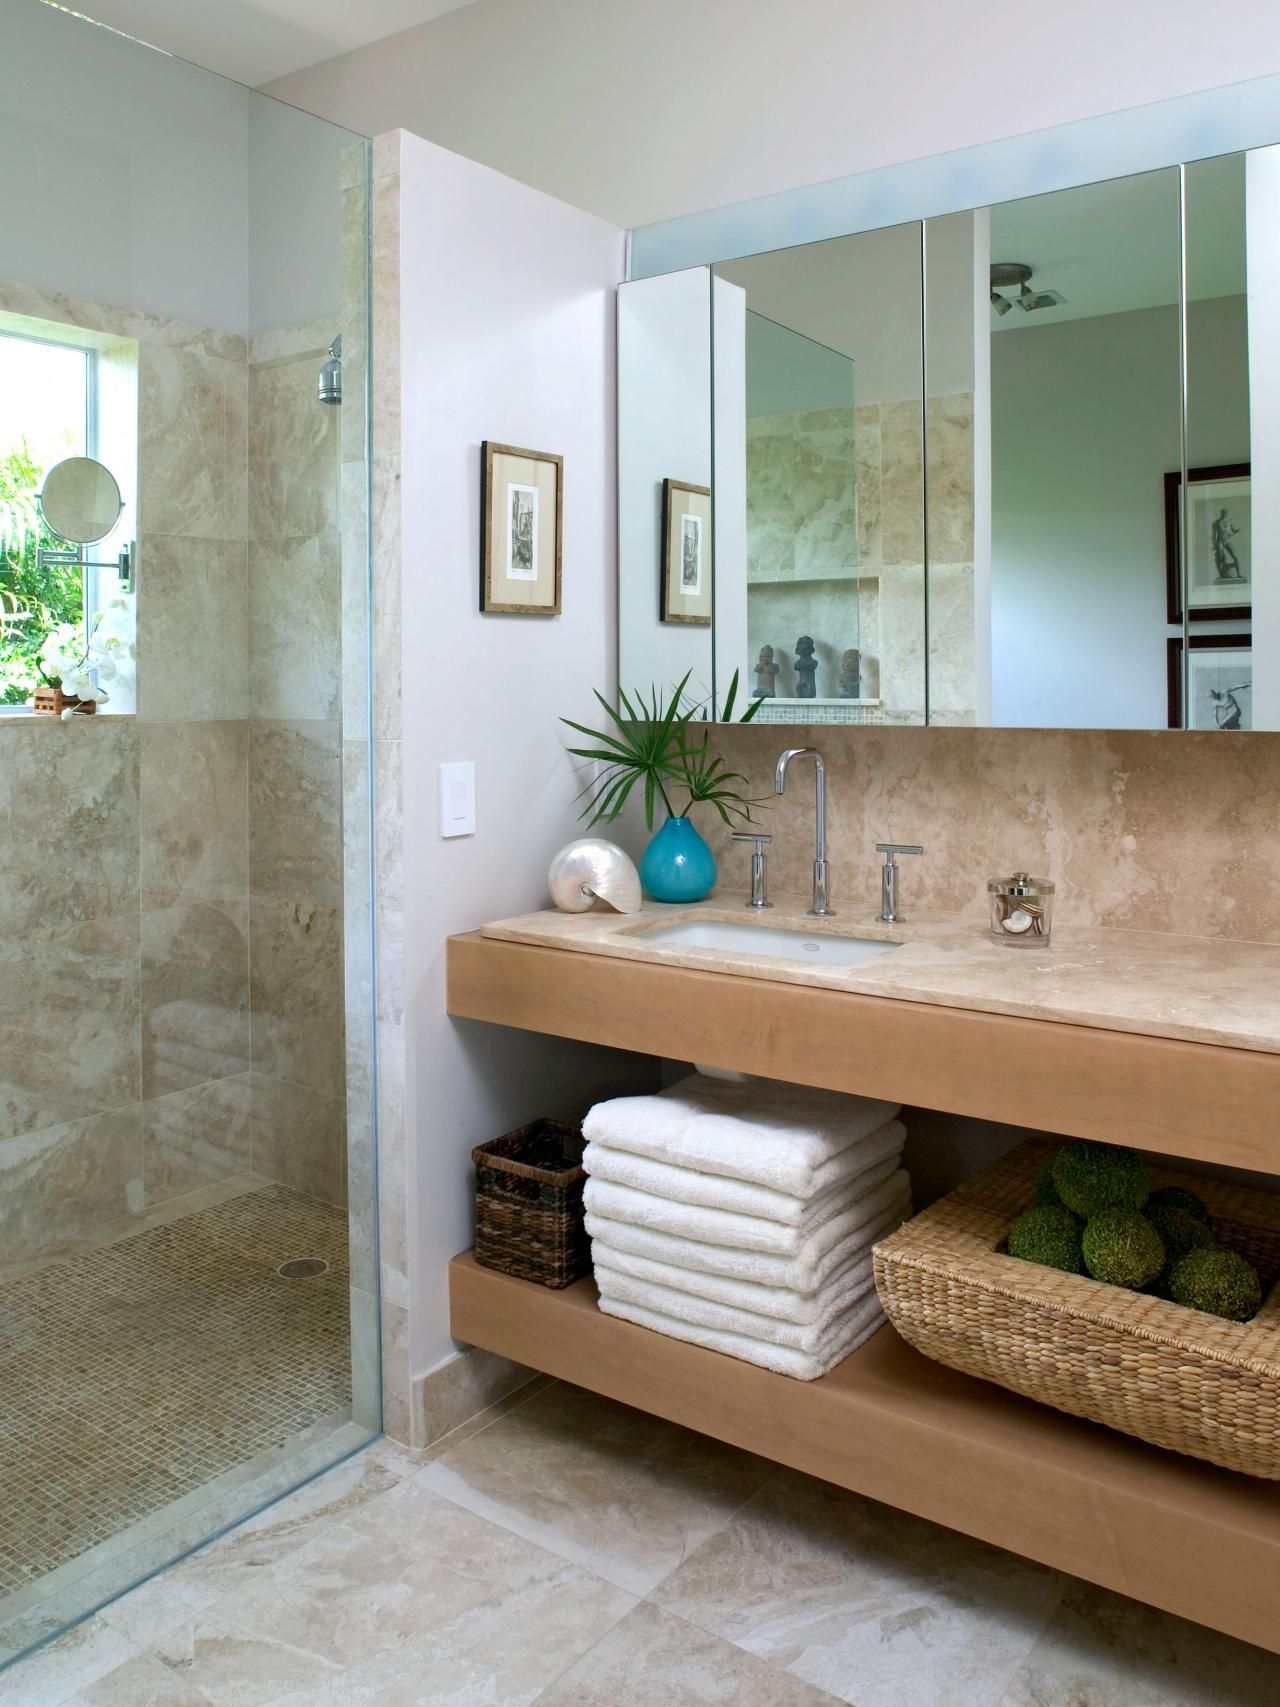 Get rustic bathroom ideas and prepare to create a warm and wel ing country style bathroom